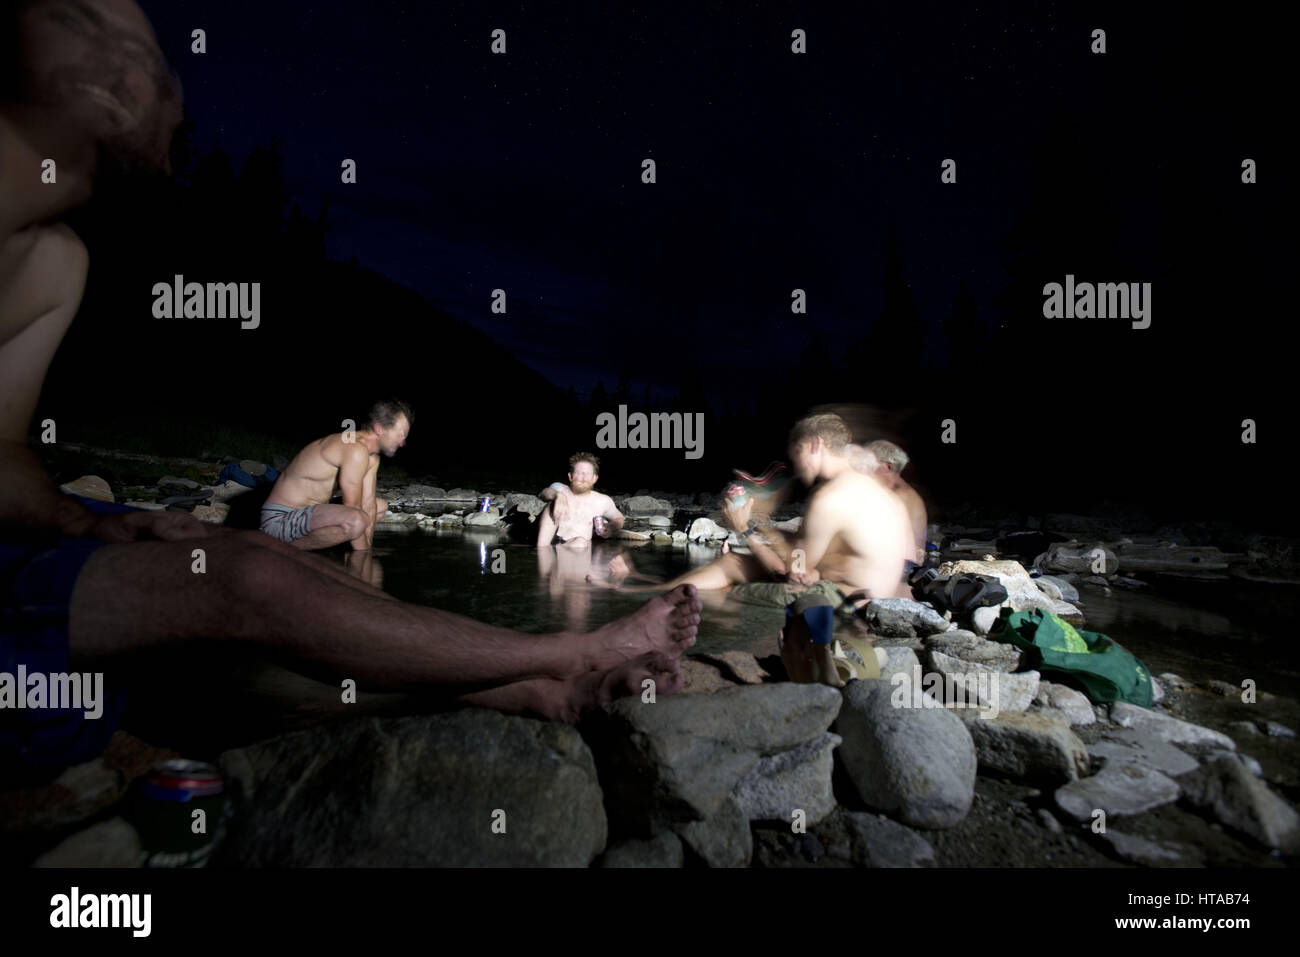 July 30, 2013 - Idaho, USA - Nighttime hot spring session.A large group of friends take rafts, kayaks and duckies - Stock Image